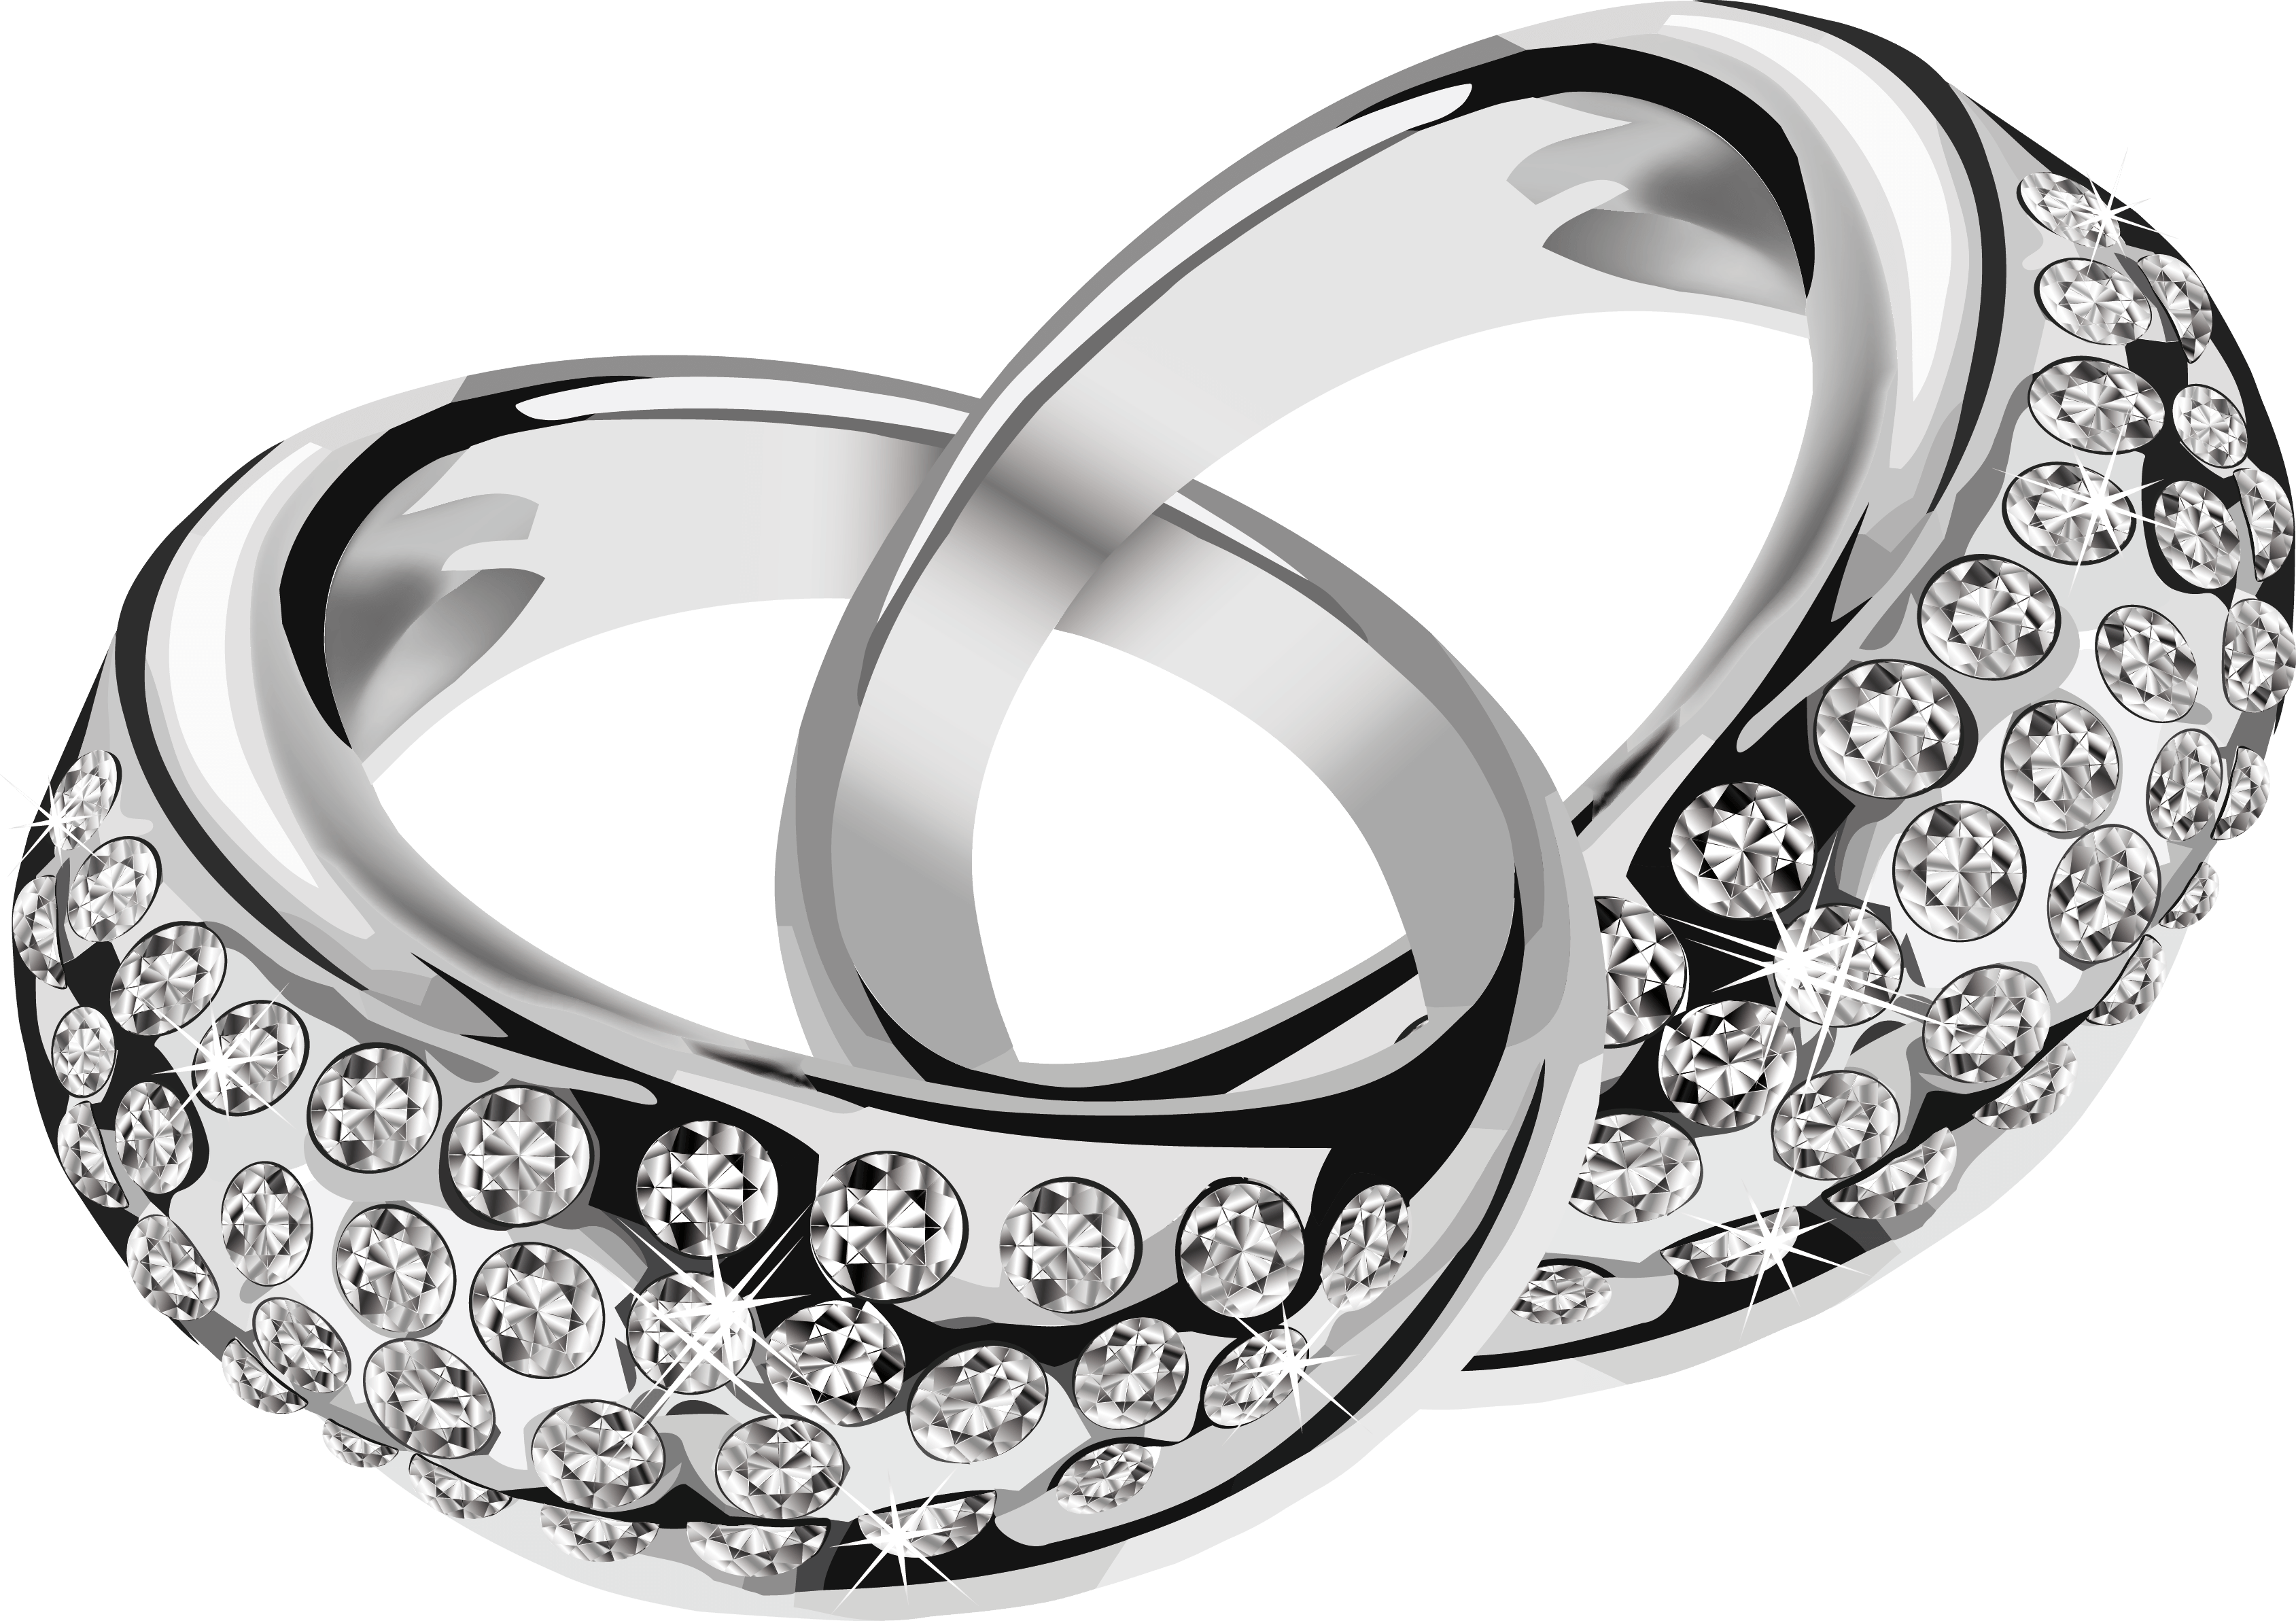 ring liai image courtesy - HD 3378×2385